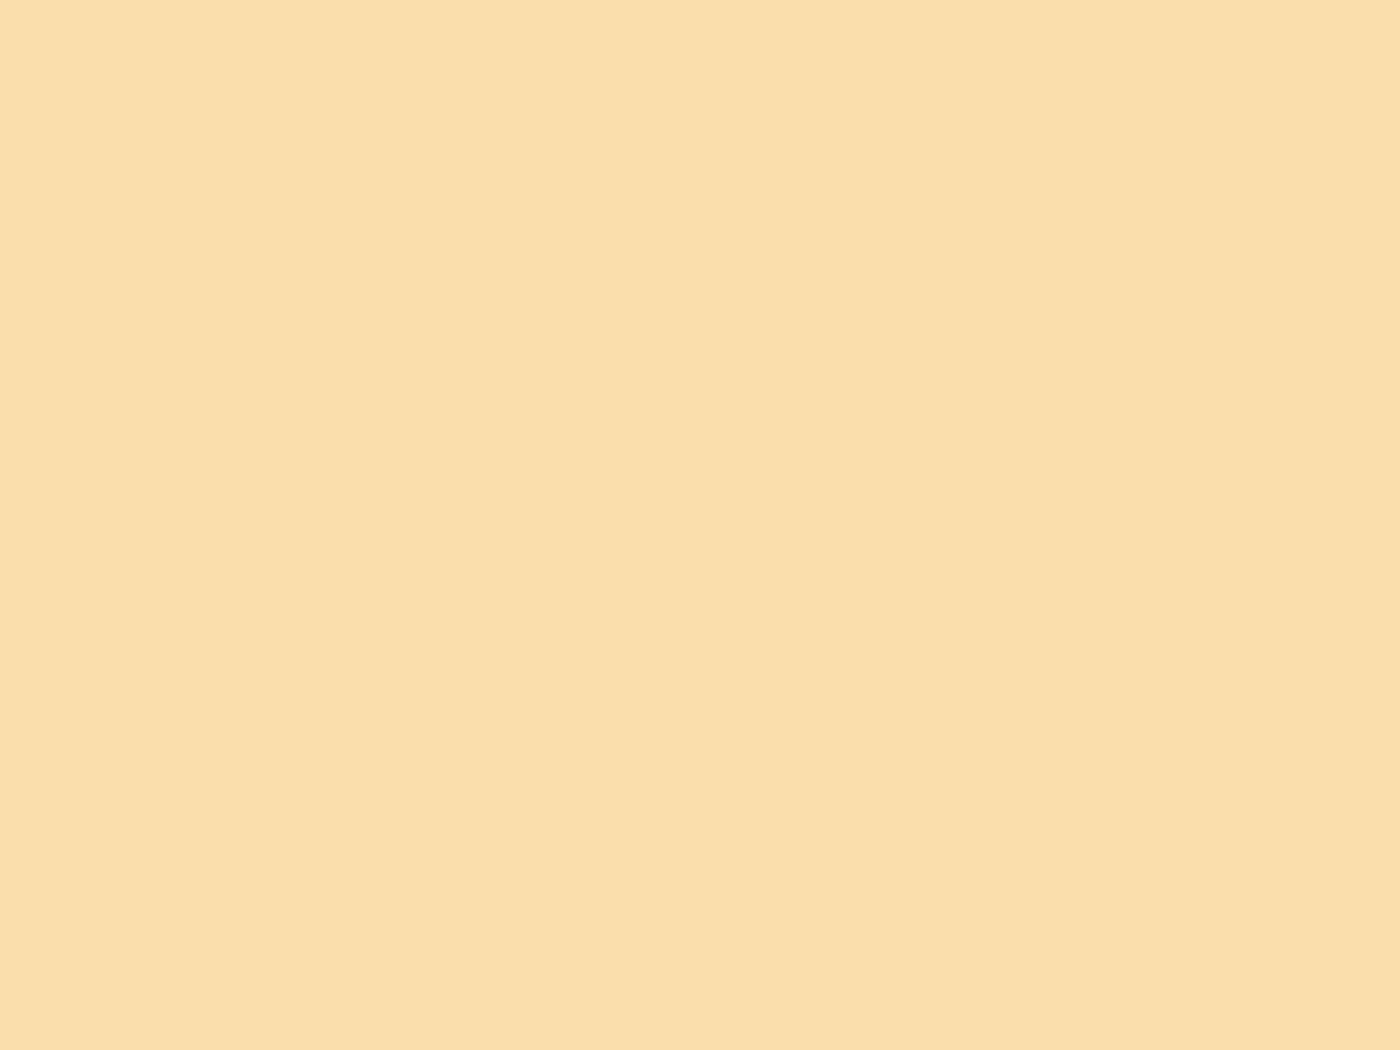 1400x1050 Peach-yellow Solid Color Background